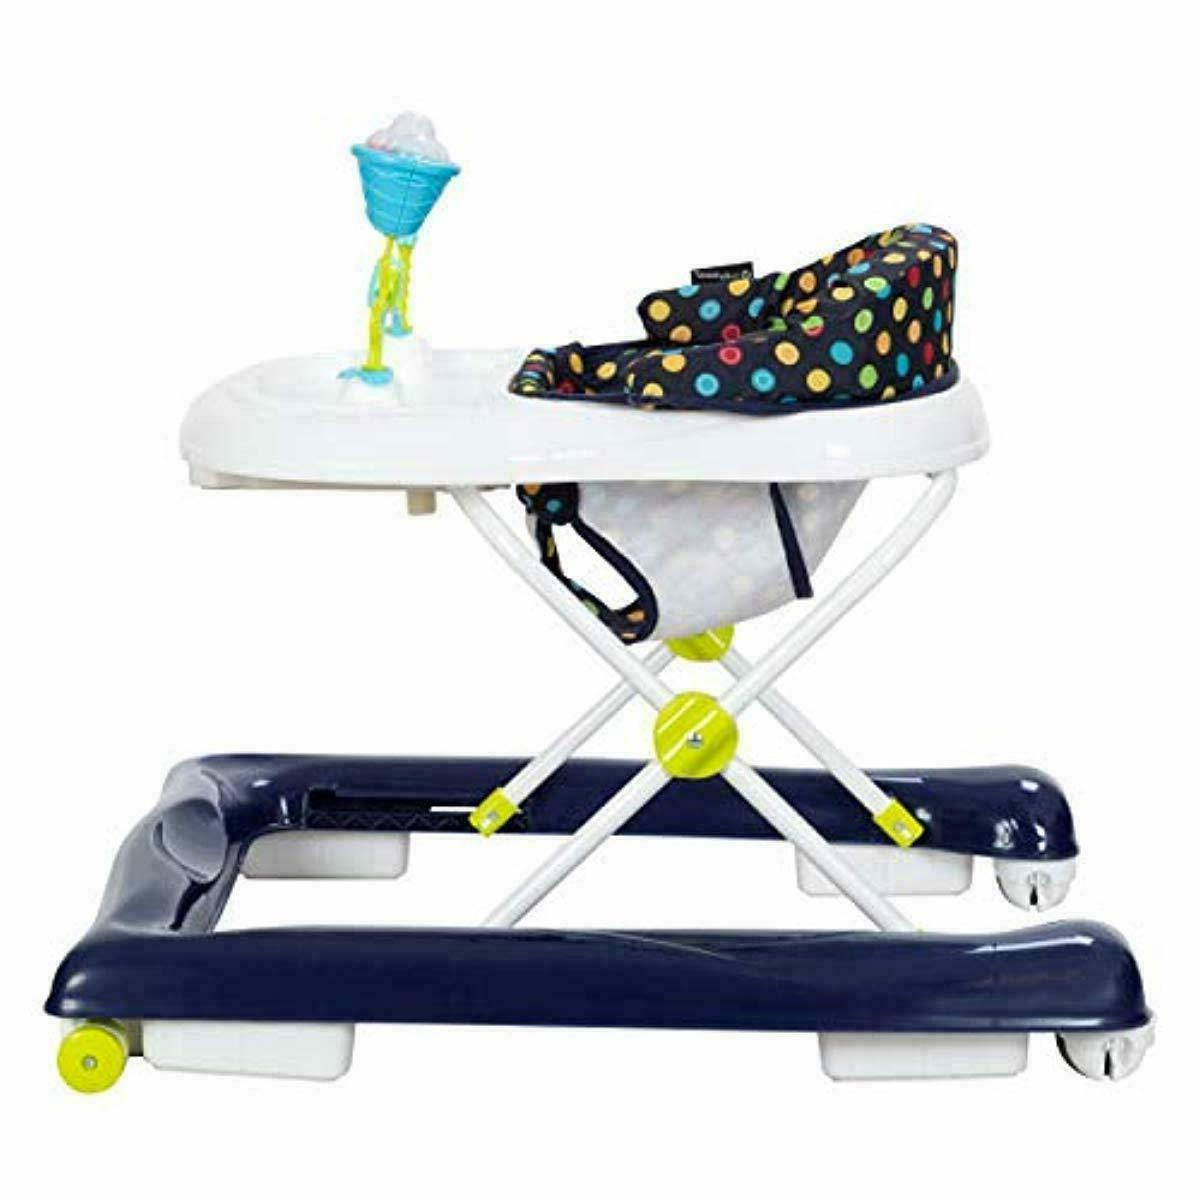 Baby Trend activity walker for girl boy with wheels chair behind tray